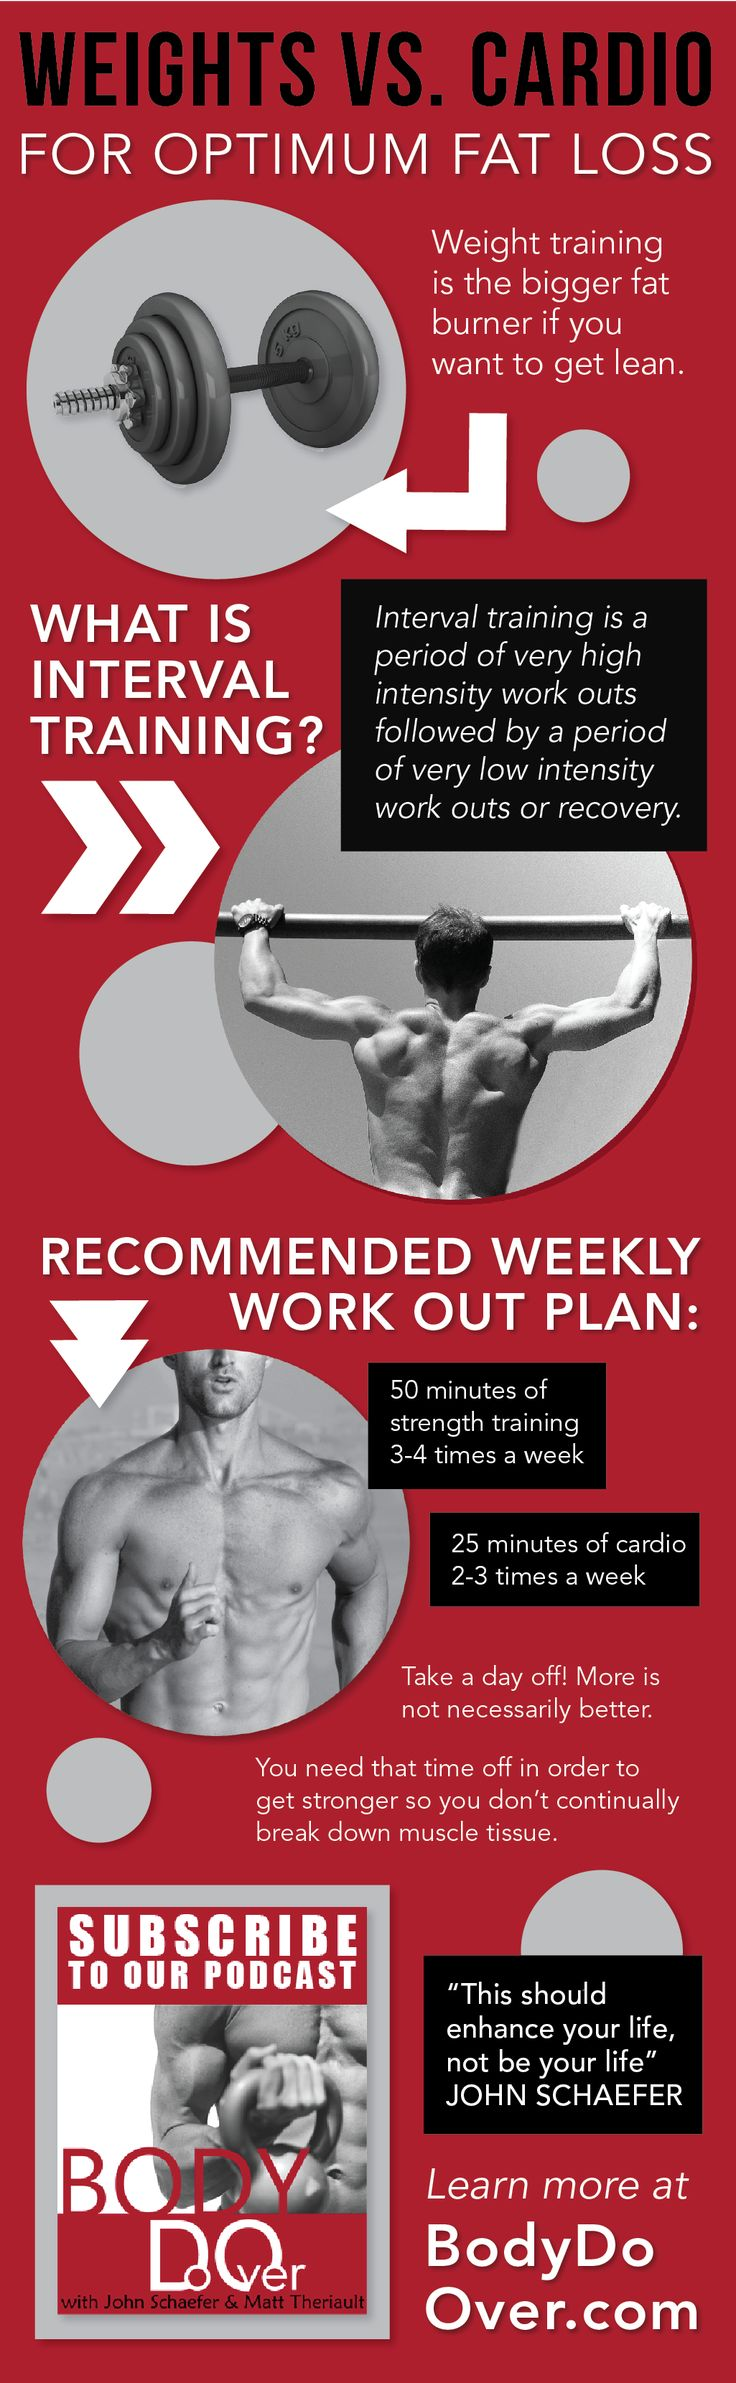 #Infographic - Weights vs. Cardio http://bodydoover.com/episode2/